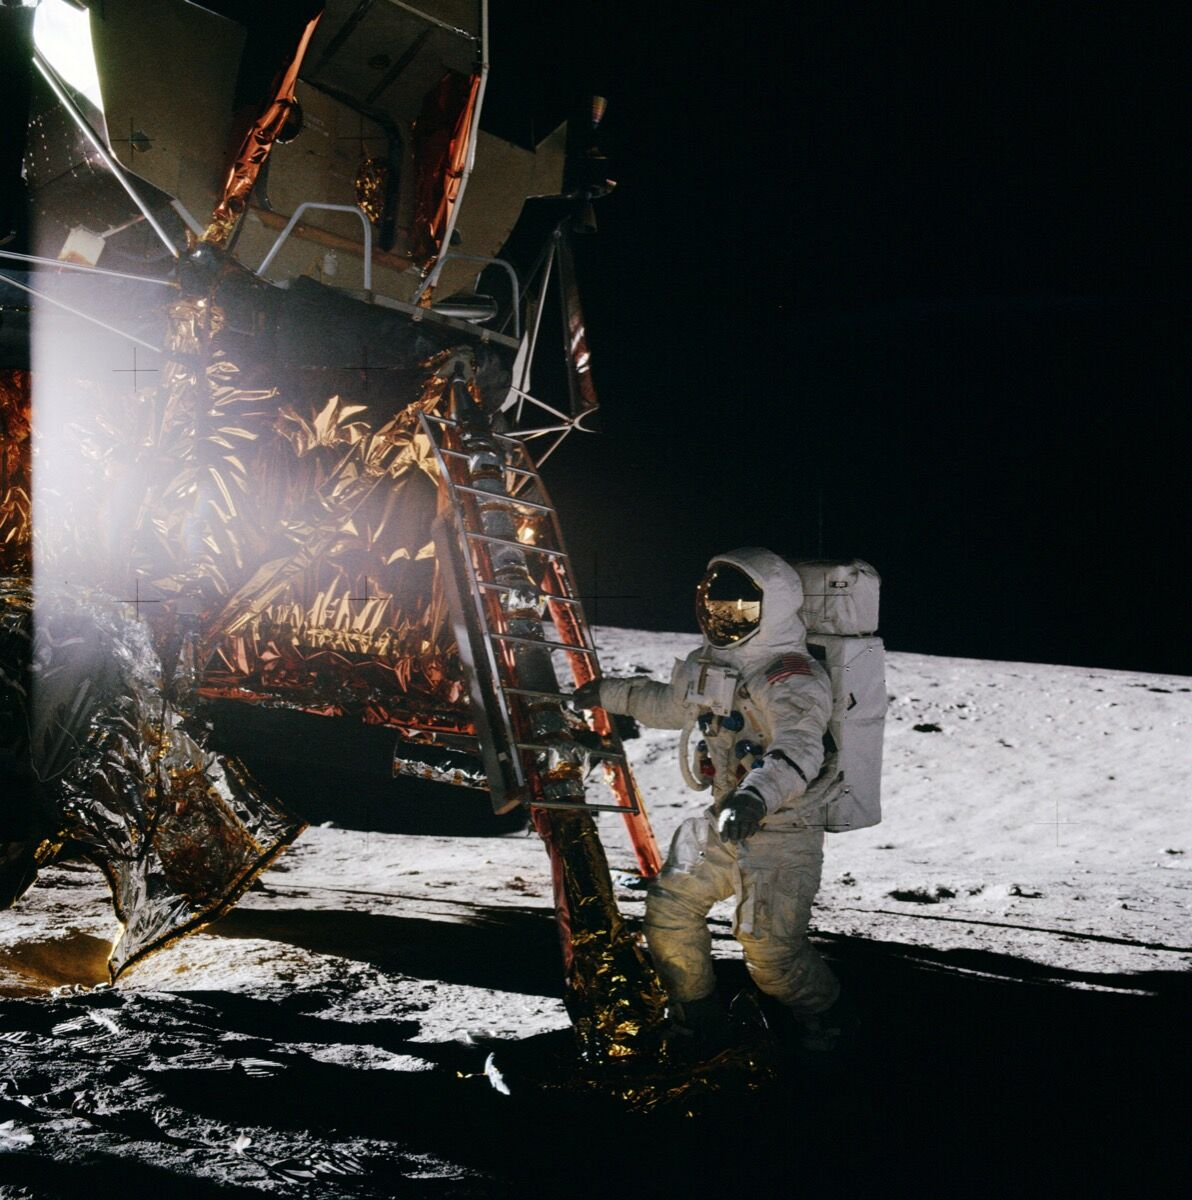 """Apollo 12"" Lunar Module pilot Al Bean steps onto the Moon. Public Domain via Creative Commons."